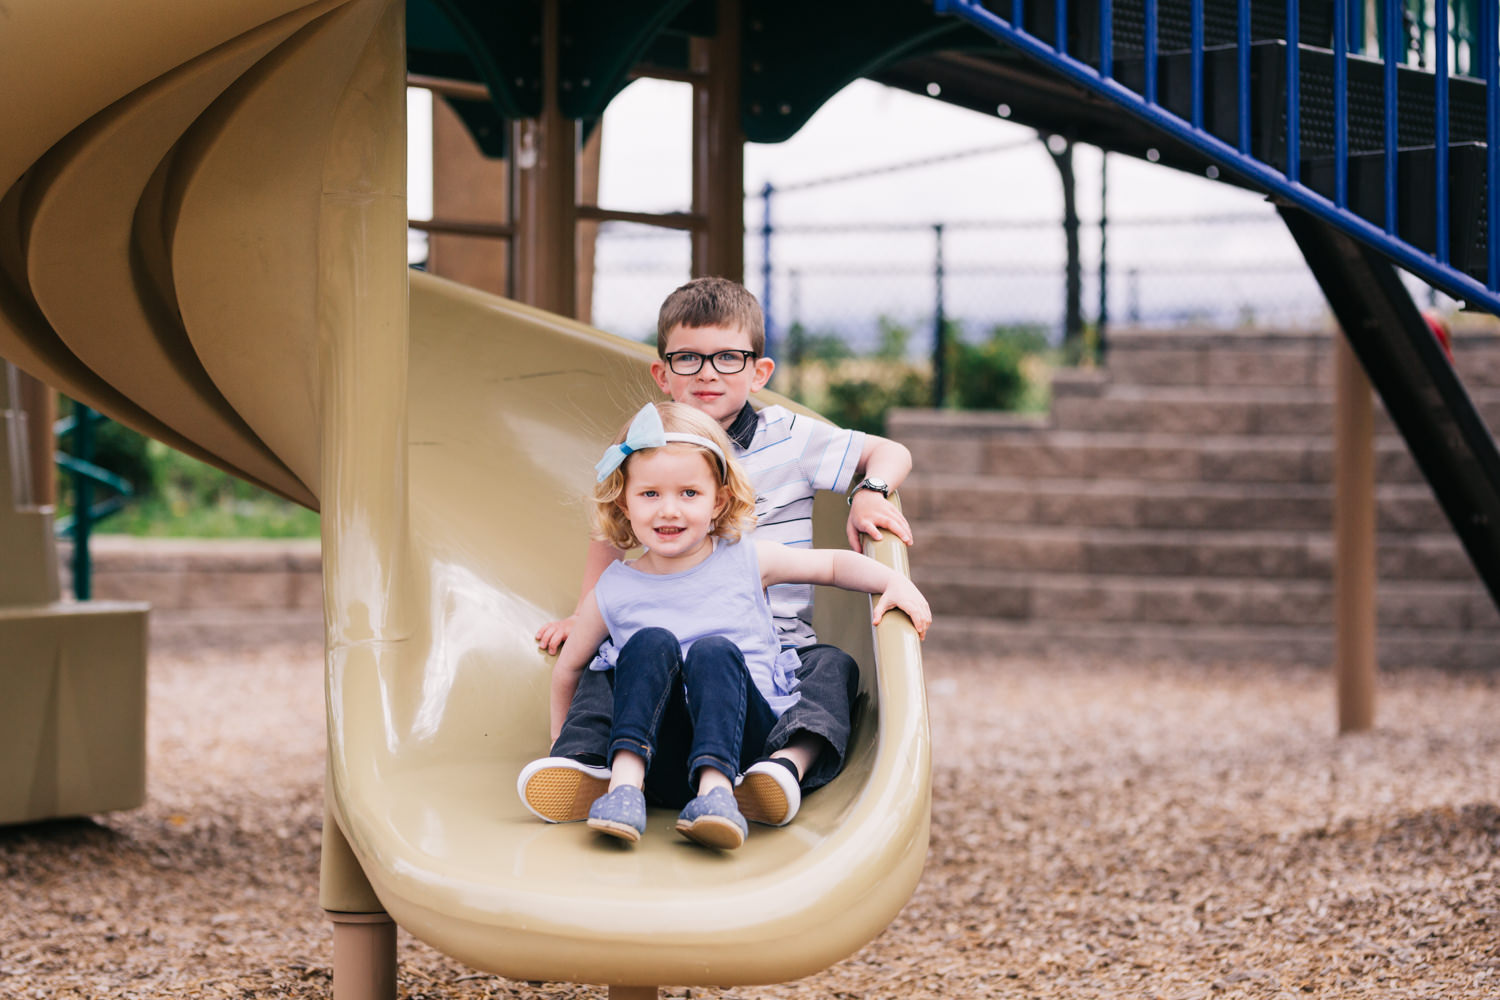 quilchena-park-family-photography-quilchena-park-lifestlye-family-photographer-julie-dorge (11 of 56).jpg